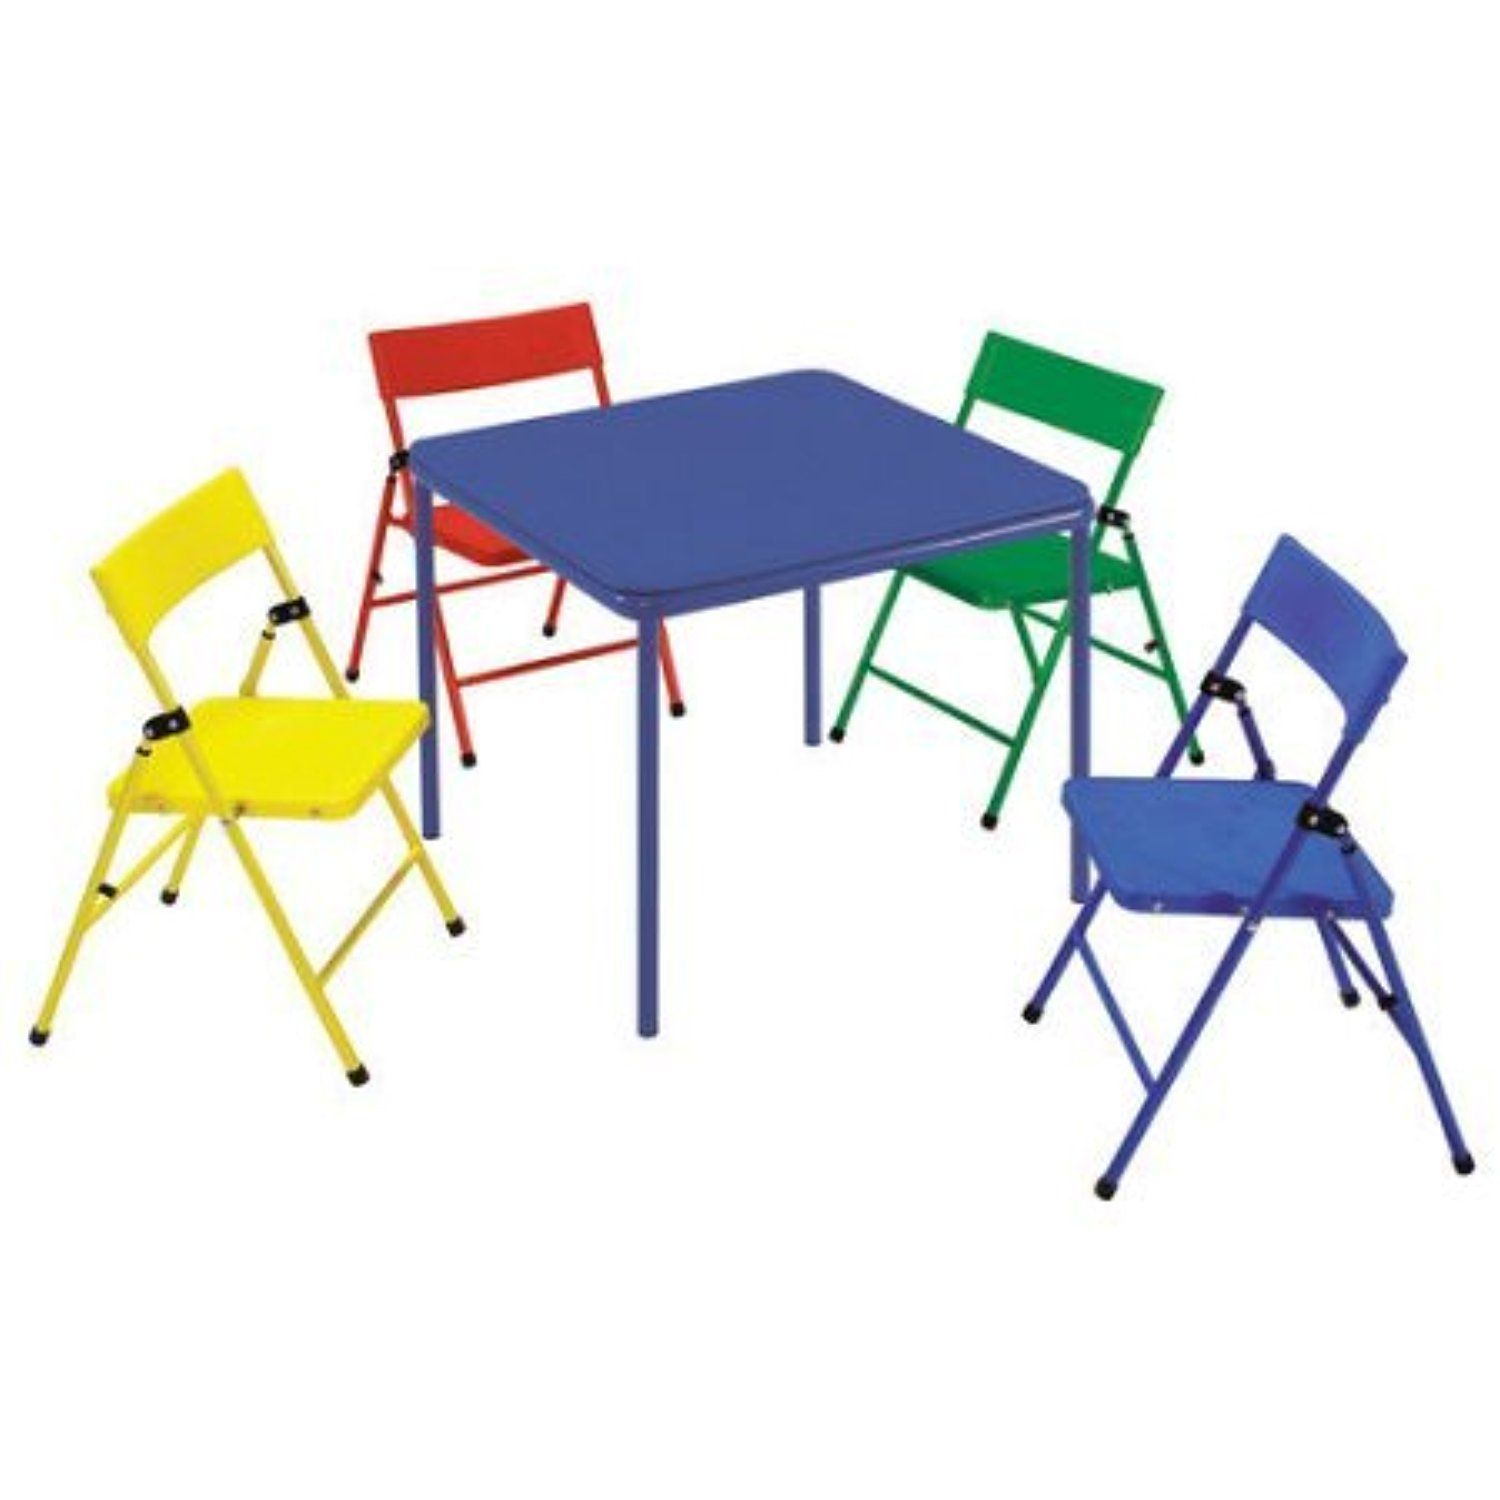 Cosco Kid s 5 Piece Folding Chair and Table Set Awesome